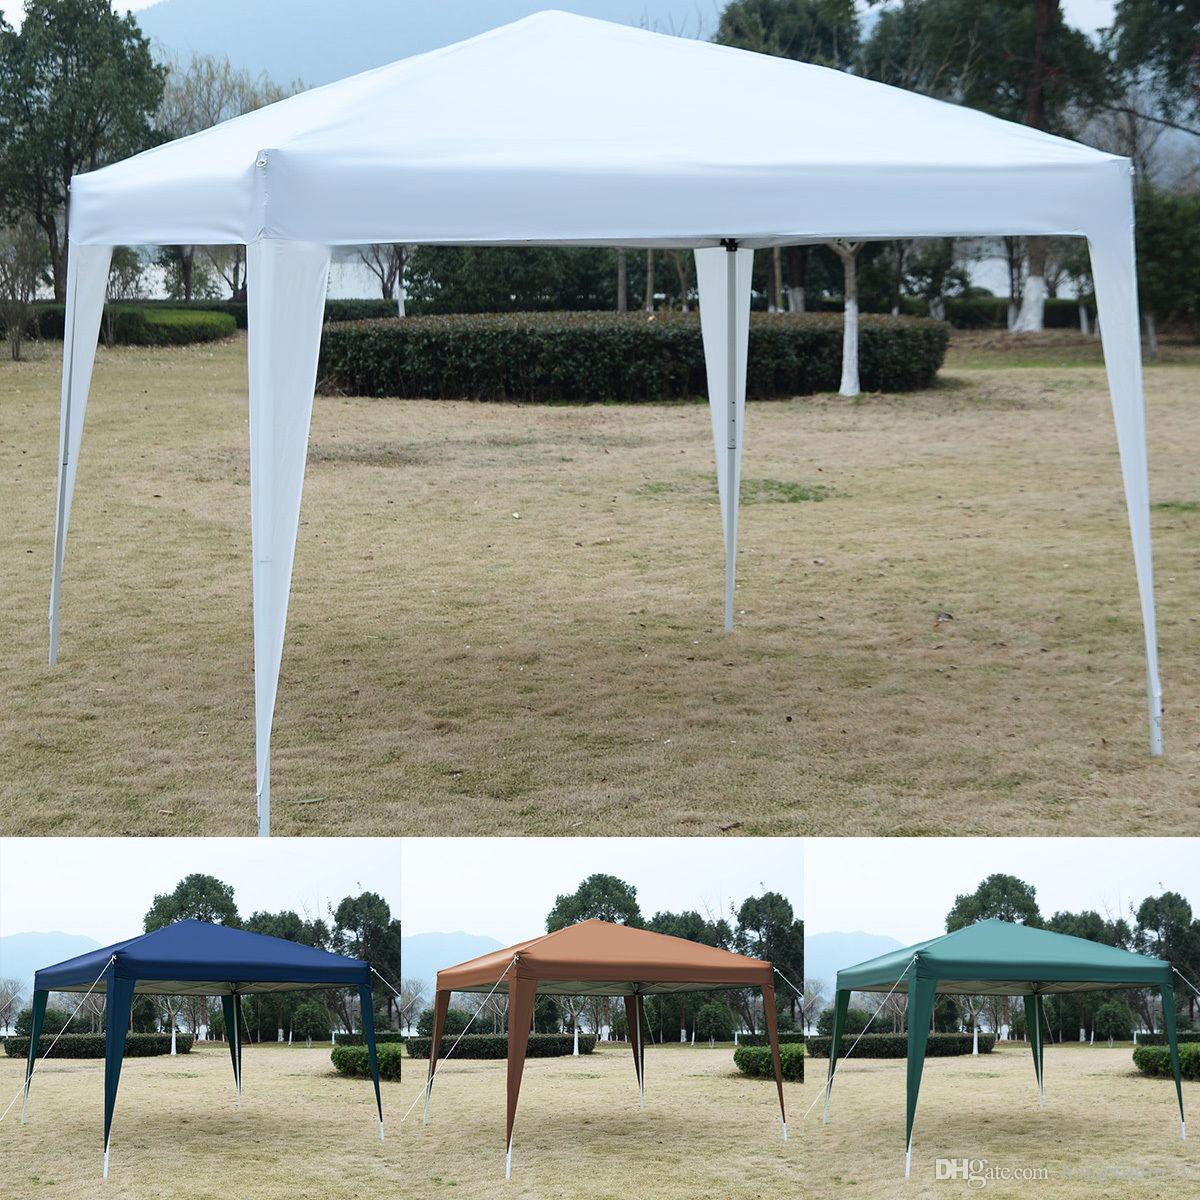 2018 10x10ez Pop Up Canopy Tent Gazebo Wedding Party Shelter Carry Bag New  From Hongxinlin21, $52.27 | Dhgate.Com